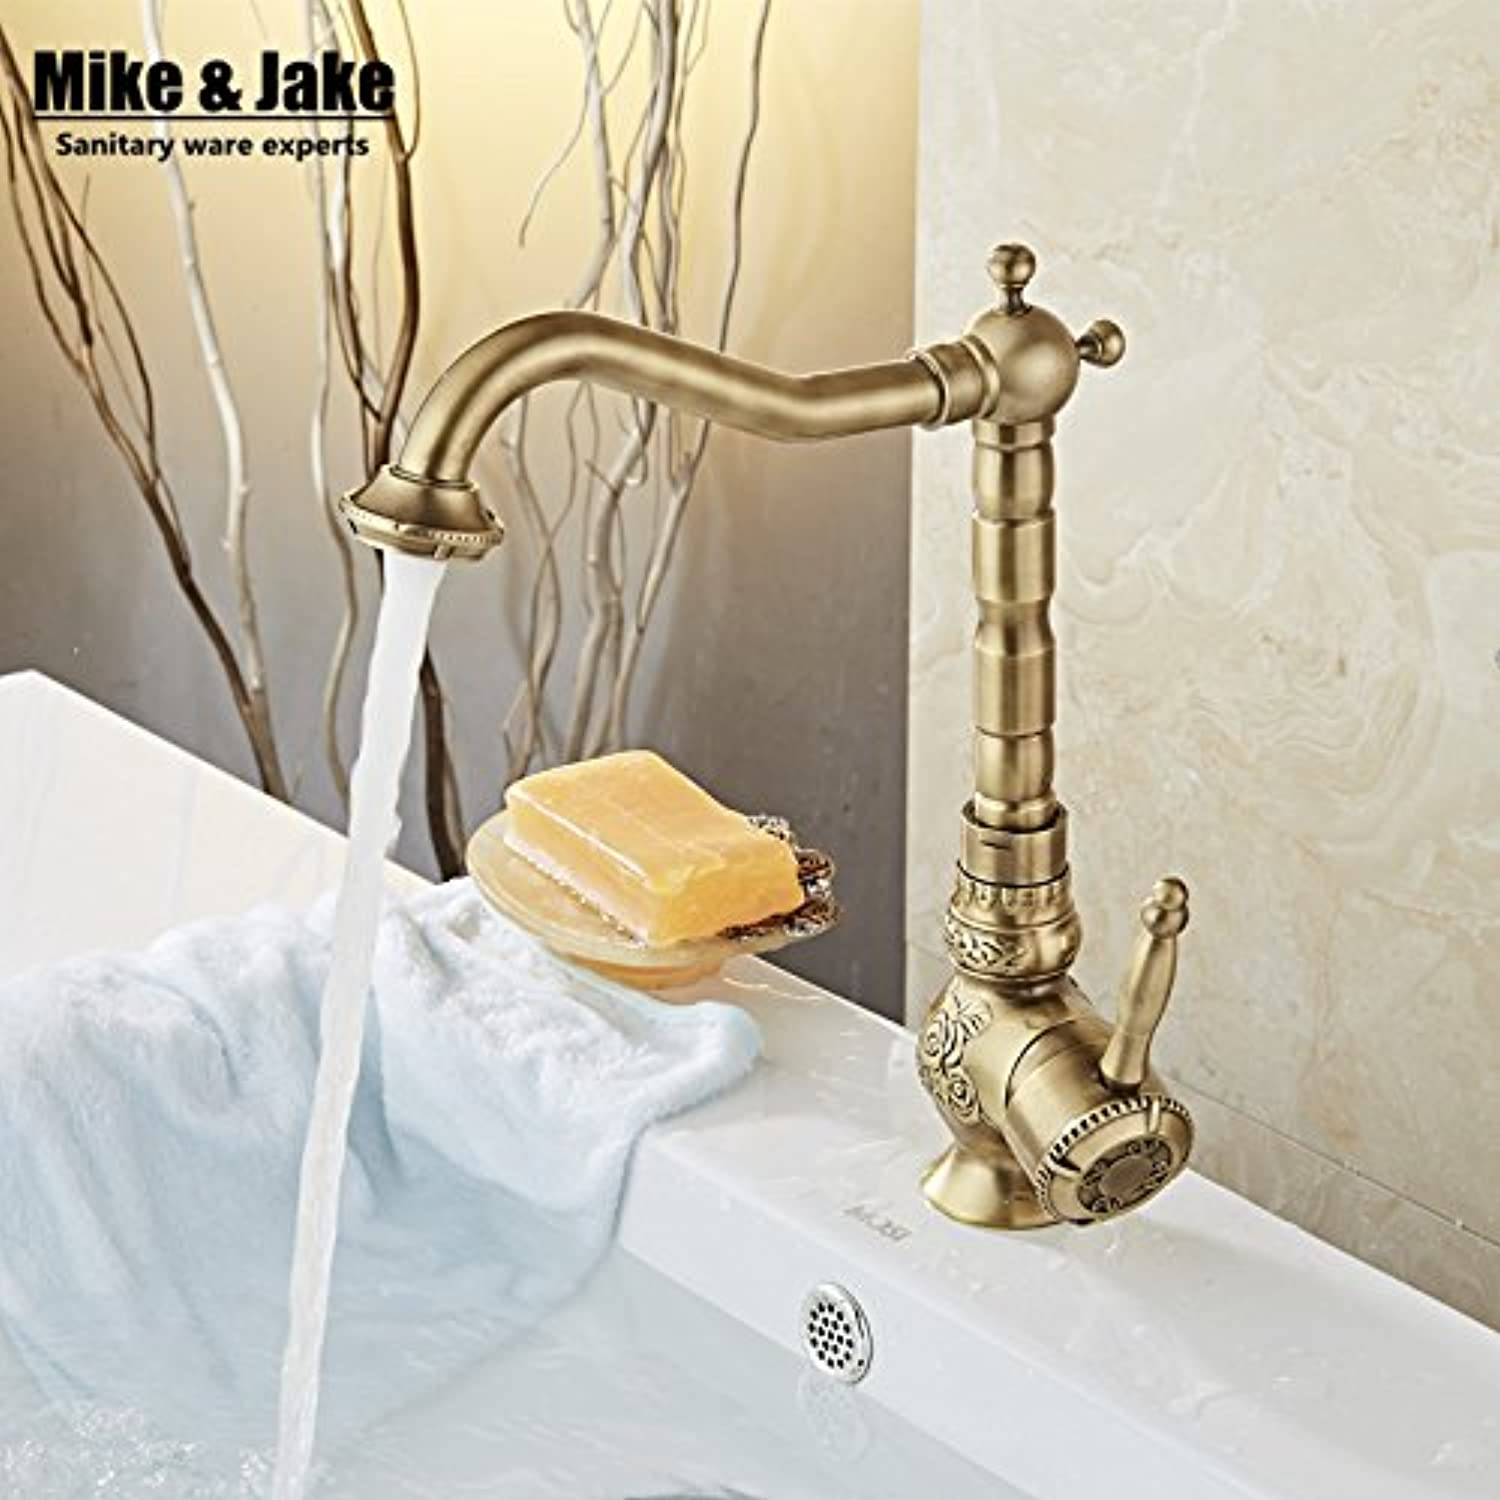 Maifeini W V Single Lever Bathroom Antique Brass Tap Basin Crane Click Antique Bronze And Hot And Cold Tap Water Home Mixers, High-Size